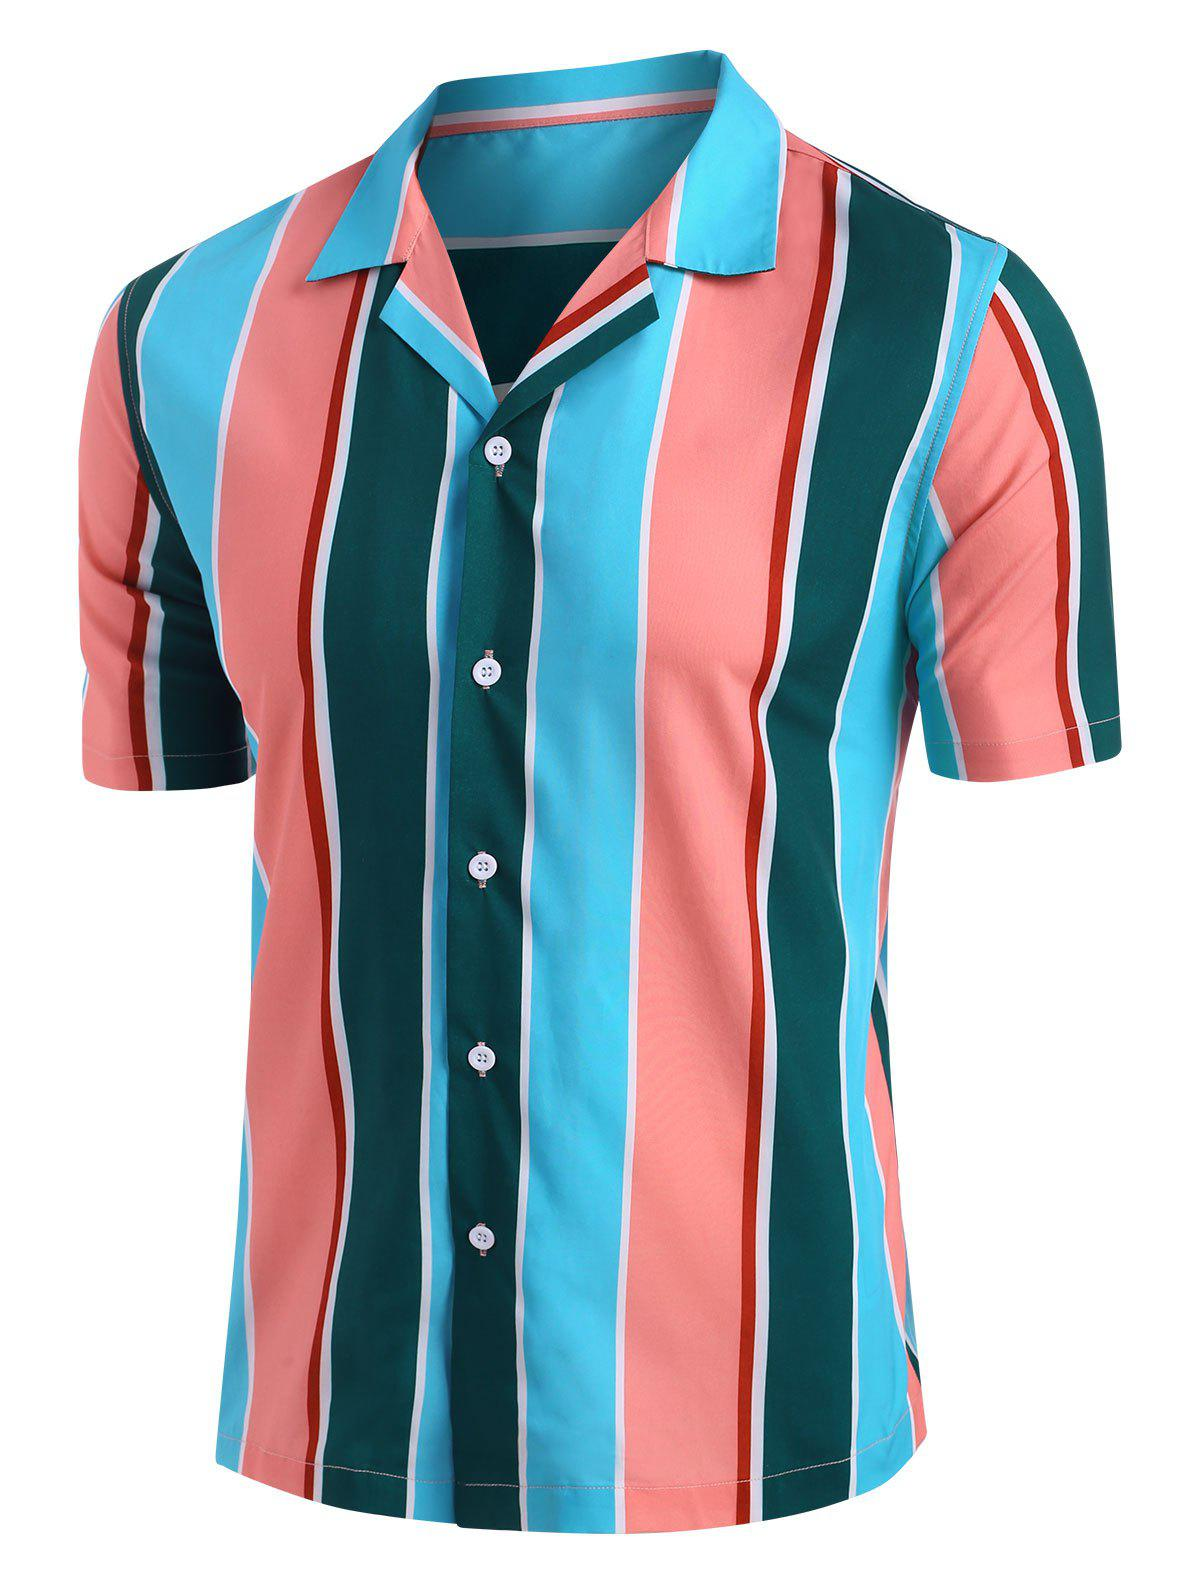 Button Down Contrast Stripe Shirt - multicolor 2XL